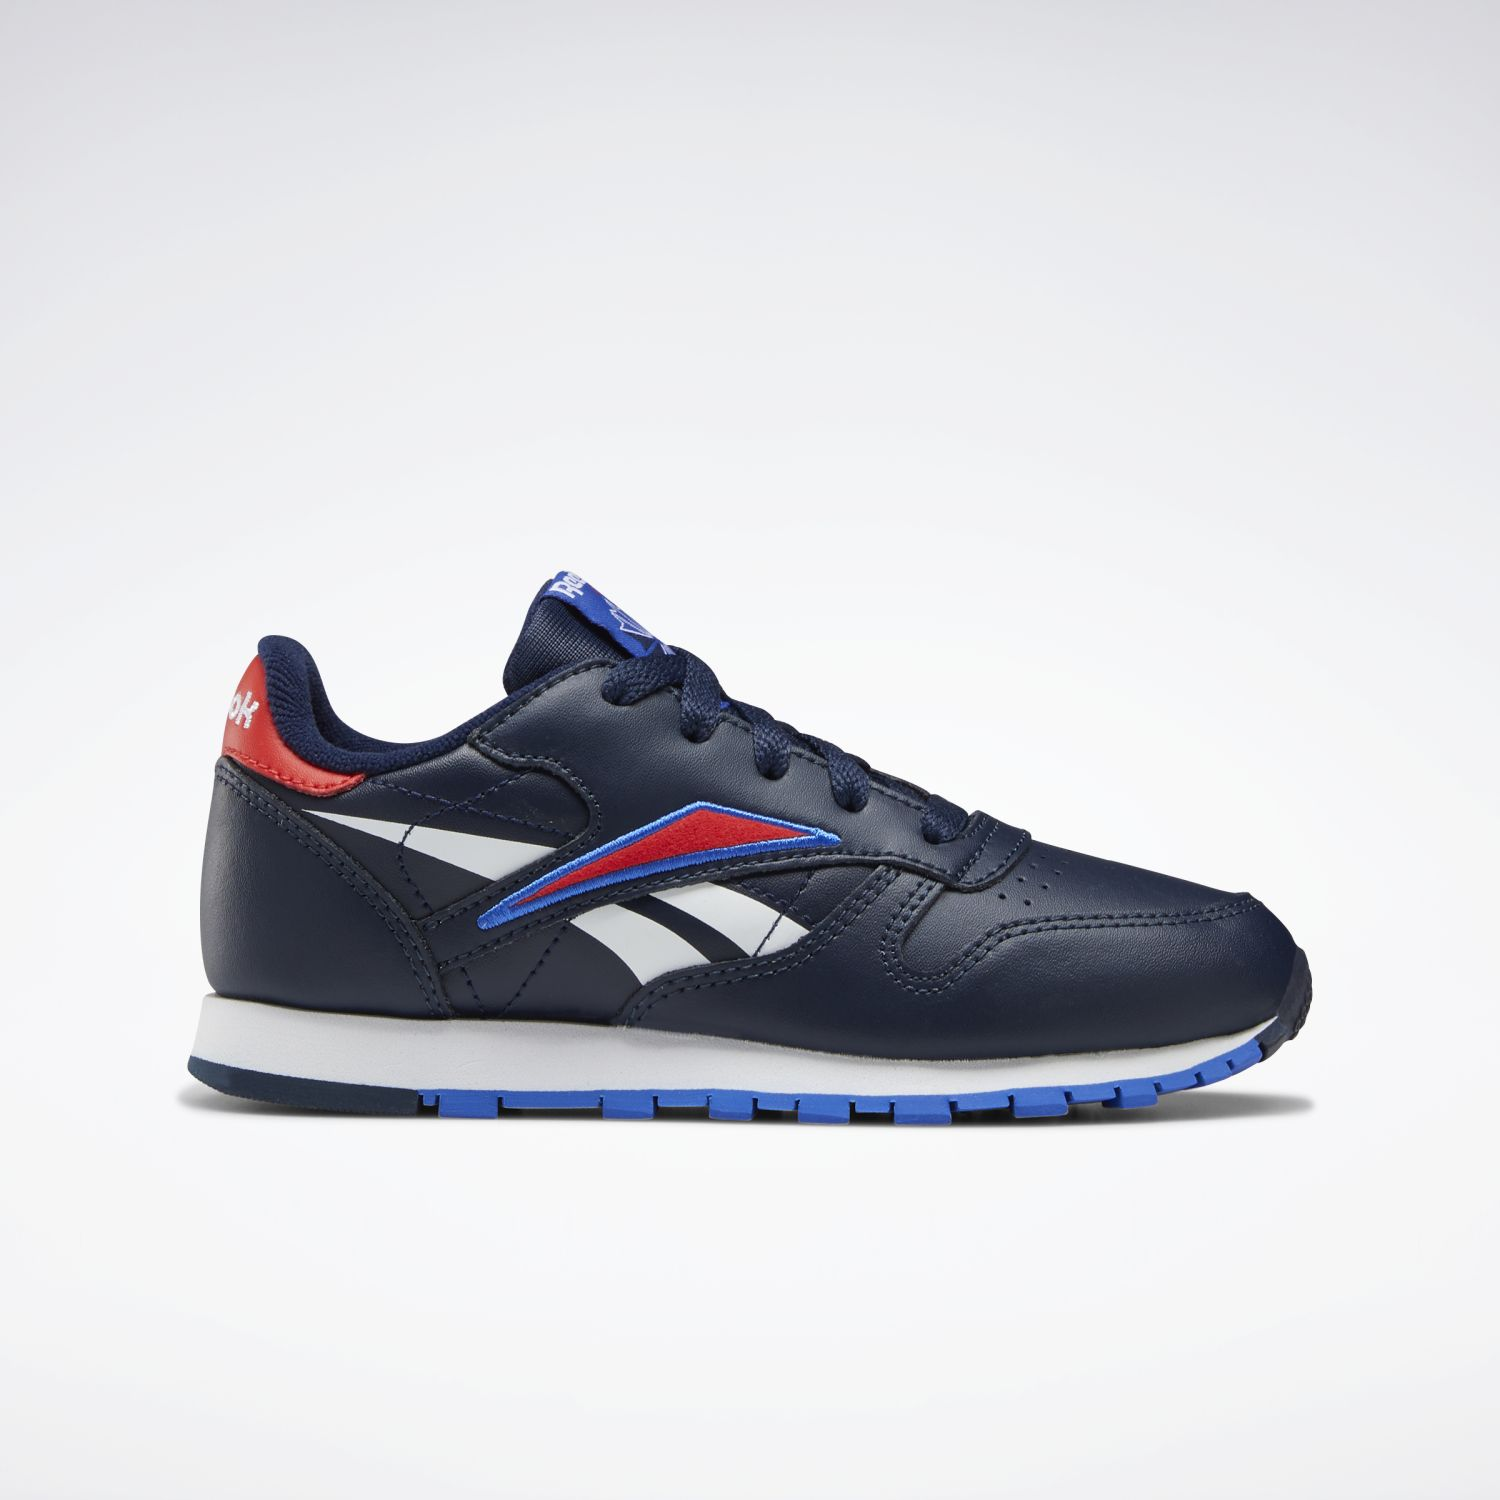 Reebok classic leather Navy Muchachos